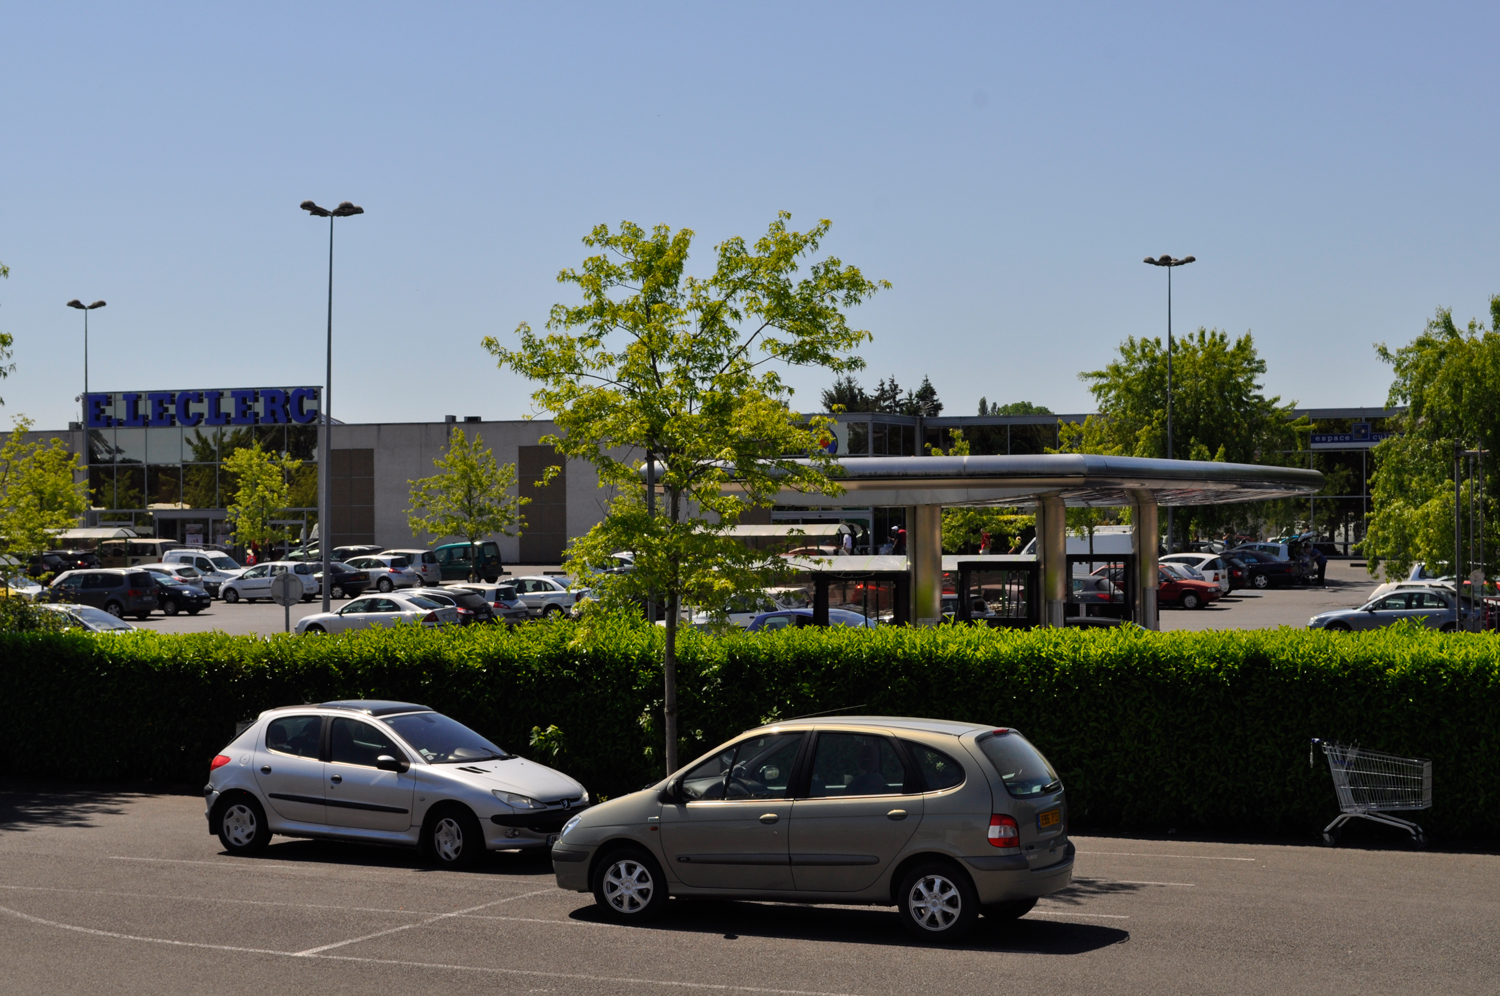 Centre commercial de Bellerive-sur-Allier